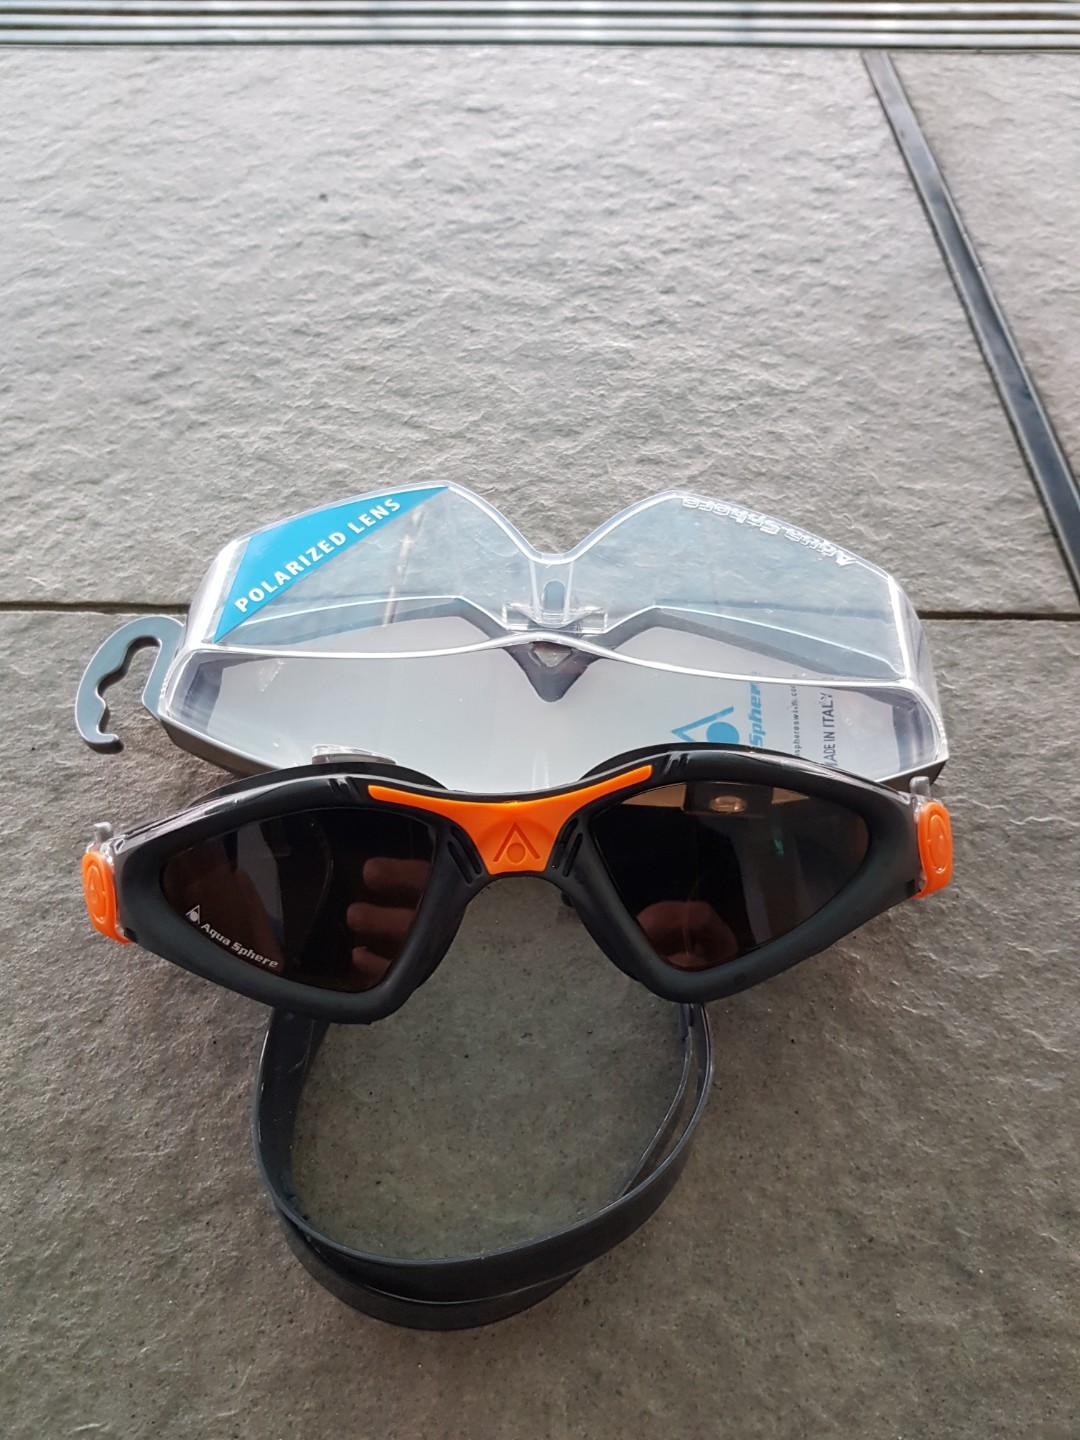 75a8aba6f8 Aqua Sphere Kayenne Swimming Polarized Goggles